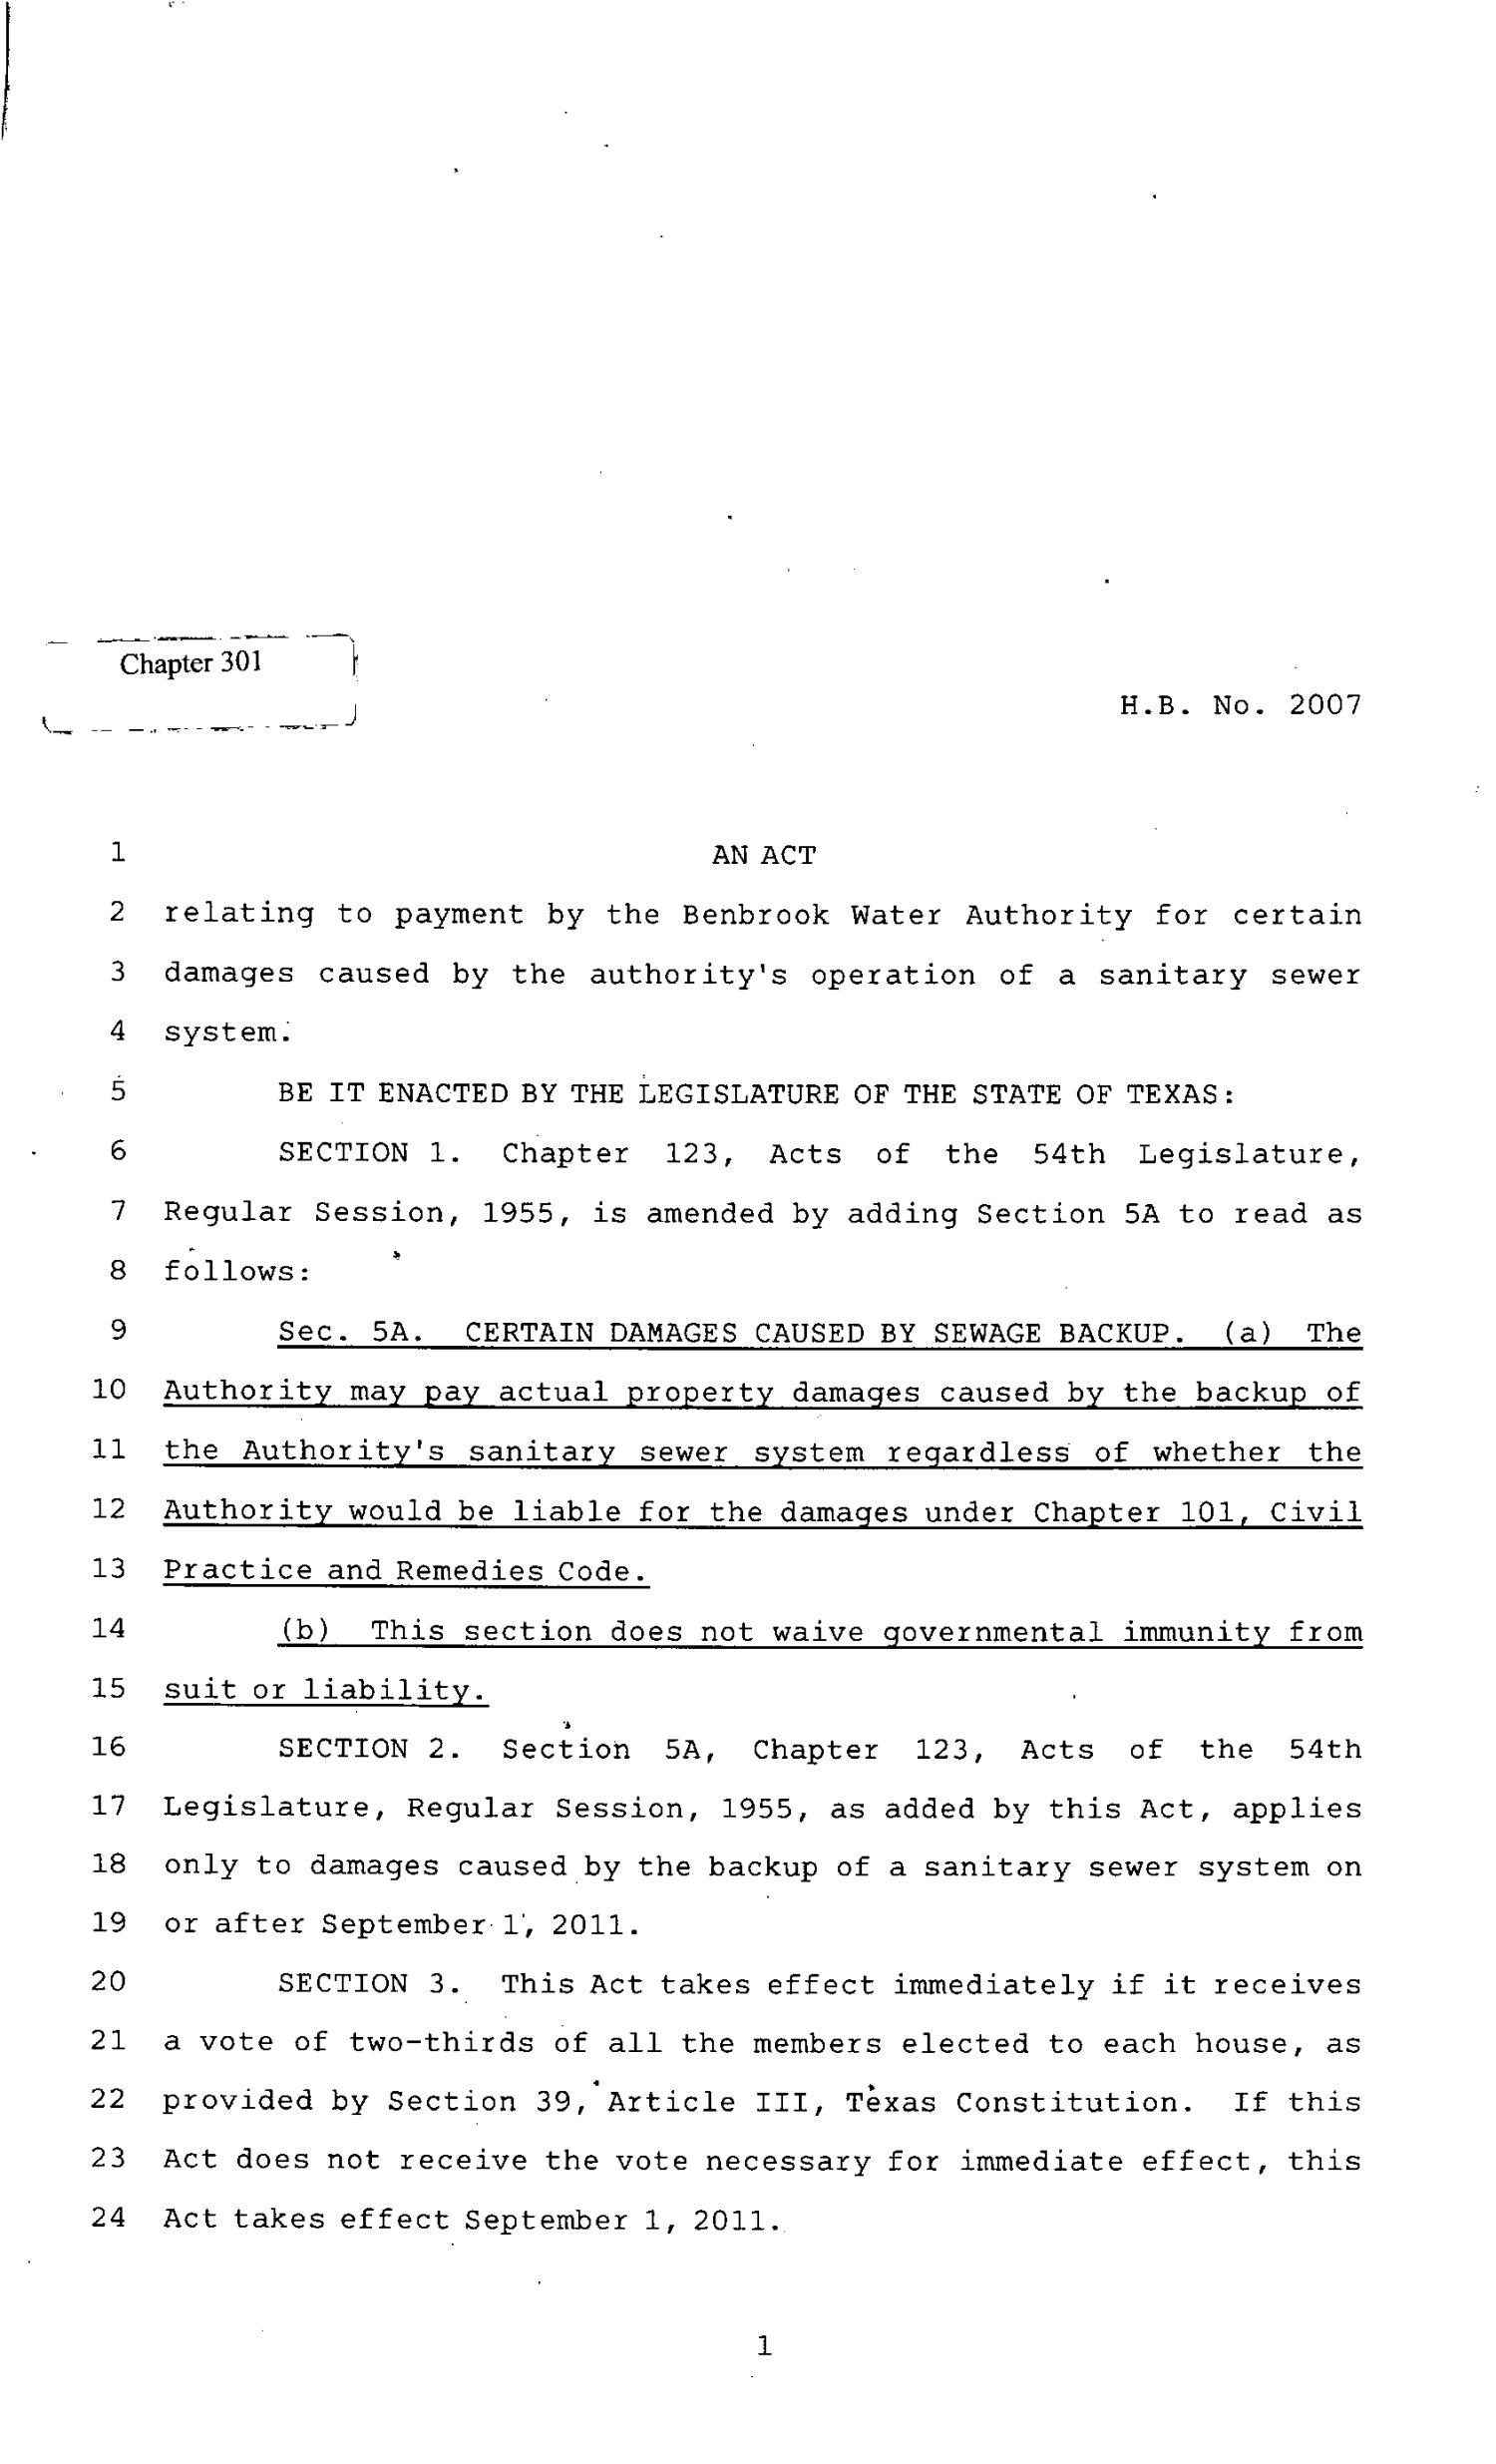 82nd Texas Legislature, Regular Session, House Bill 2007, Chapter 301                                                                                                      [Sequence #]: 1 of 2